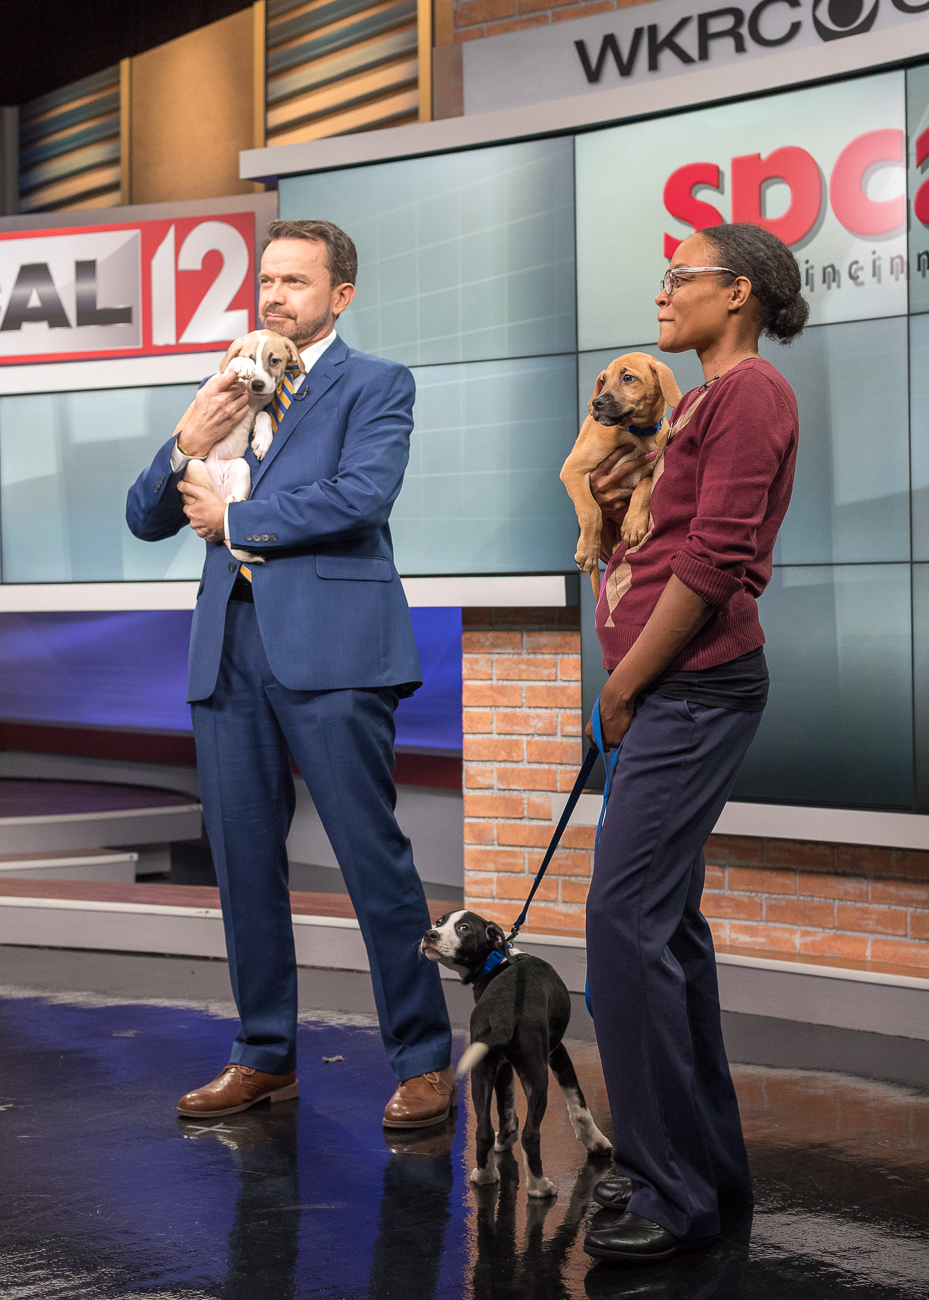 PICTURED: Paul Poteet, Local 12 meteorologist, holding Margot; Nyketa Gaffney, Public Information Officer for the SPCA, holding Nano; and Pickle standing with a leash / ABOUT: The Society for the Prevention of Cruelty to Animals (SPCA) is an organization that seeks out new, loving owners for adoptable, adorable dogs and cats. While the pets in these photos are likely already adopted by the time this is published, you can find other dogs and cats like them by visiting SPCAcincinnati.org. The organization receives new animals often; Local 12 WKRC-TV features several of those pets every Tuesday on their morning and evening broadcasts and every Saturday during the morning broadcast. / Image: Phil Armstrong, Cincinnati Refined // Published: 10.24.18